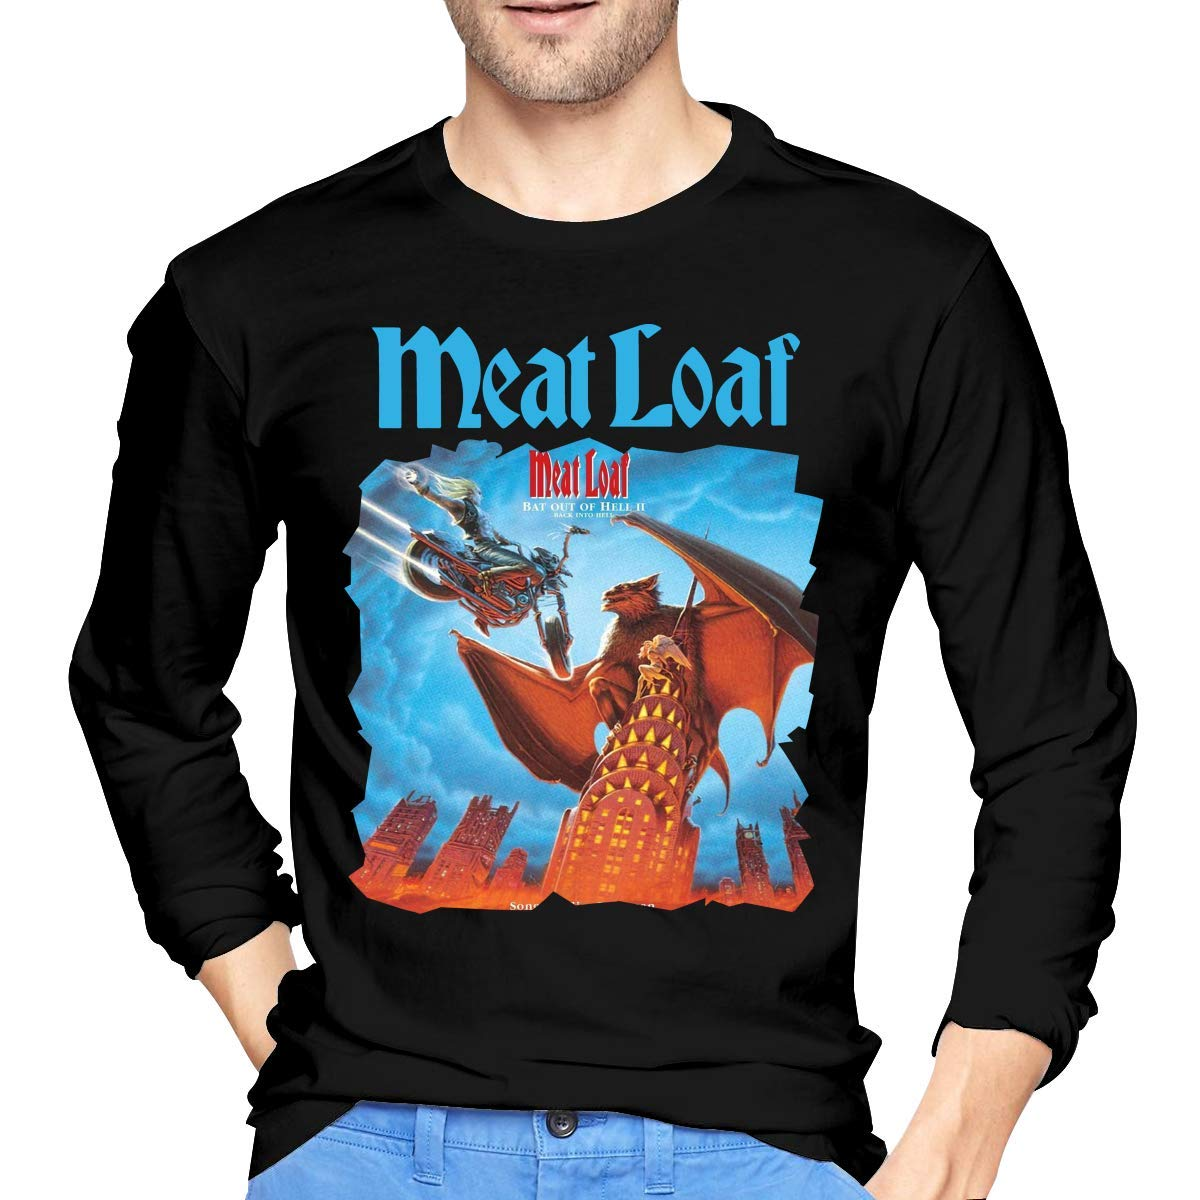 Fssatung S Meat Loaf Back Into Hell T Shirt Black